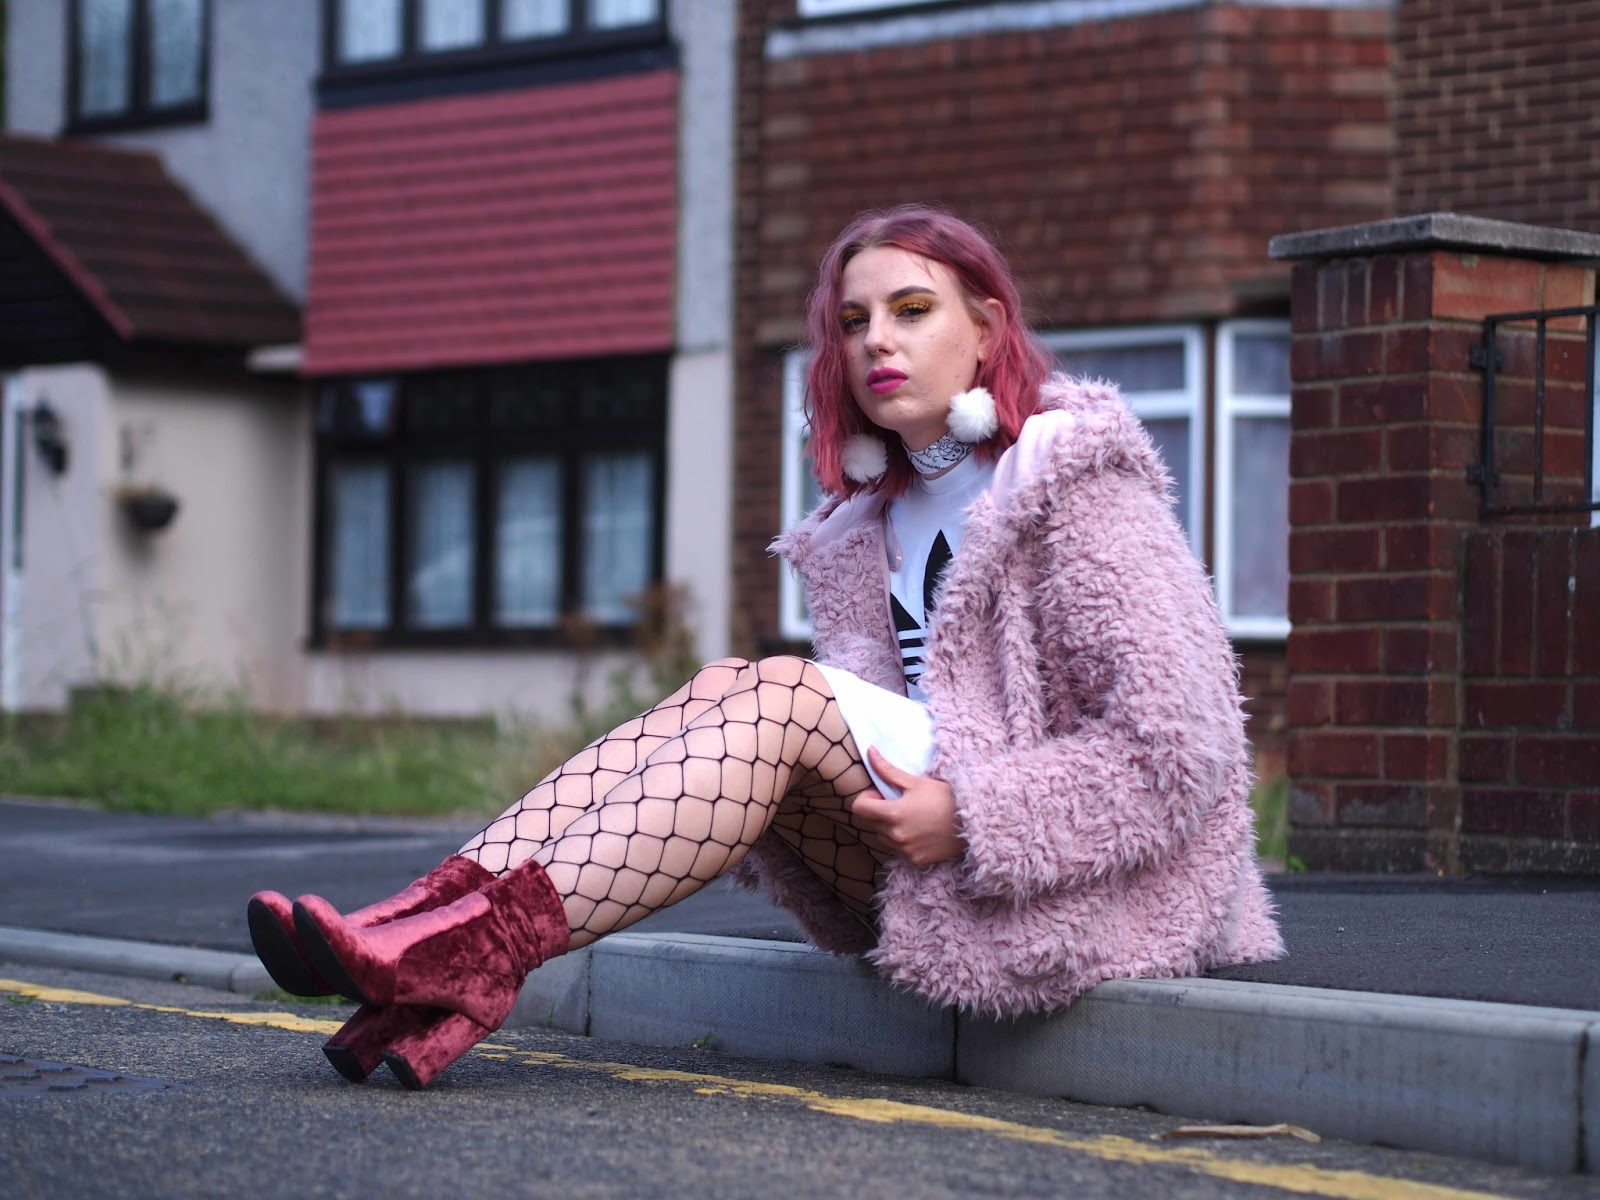 london street style, how to style fishnets, grunge outfit ideas, grunge outfits, grunge blogger, uk fashion blogger, street style blogger, london fashion blogger